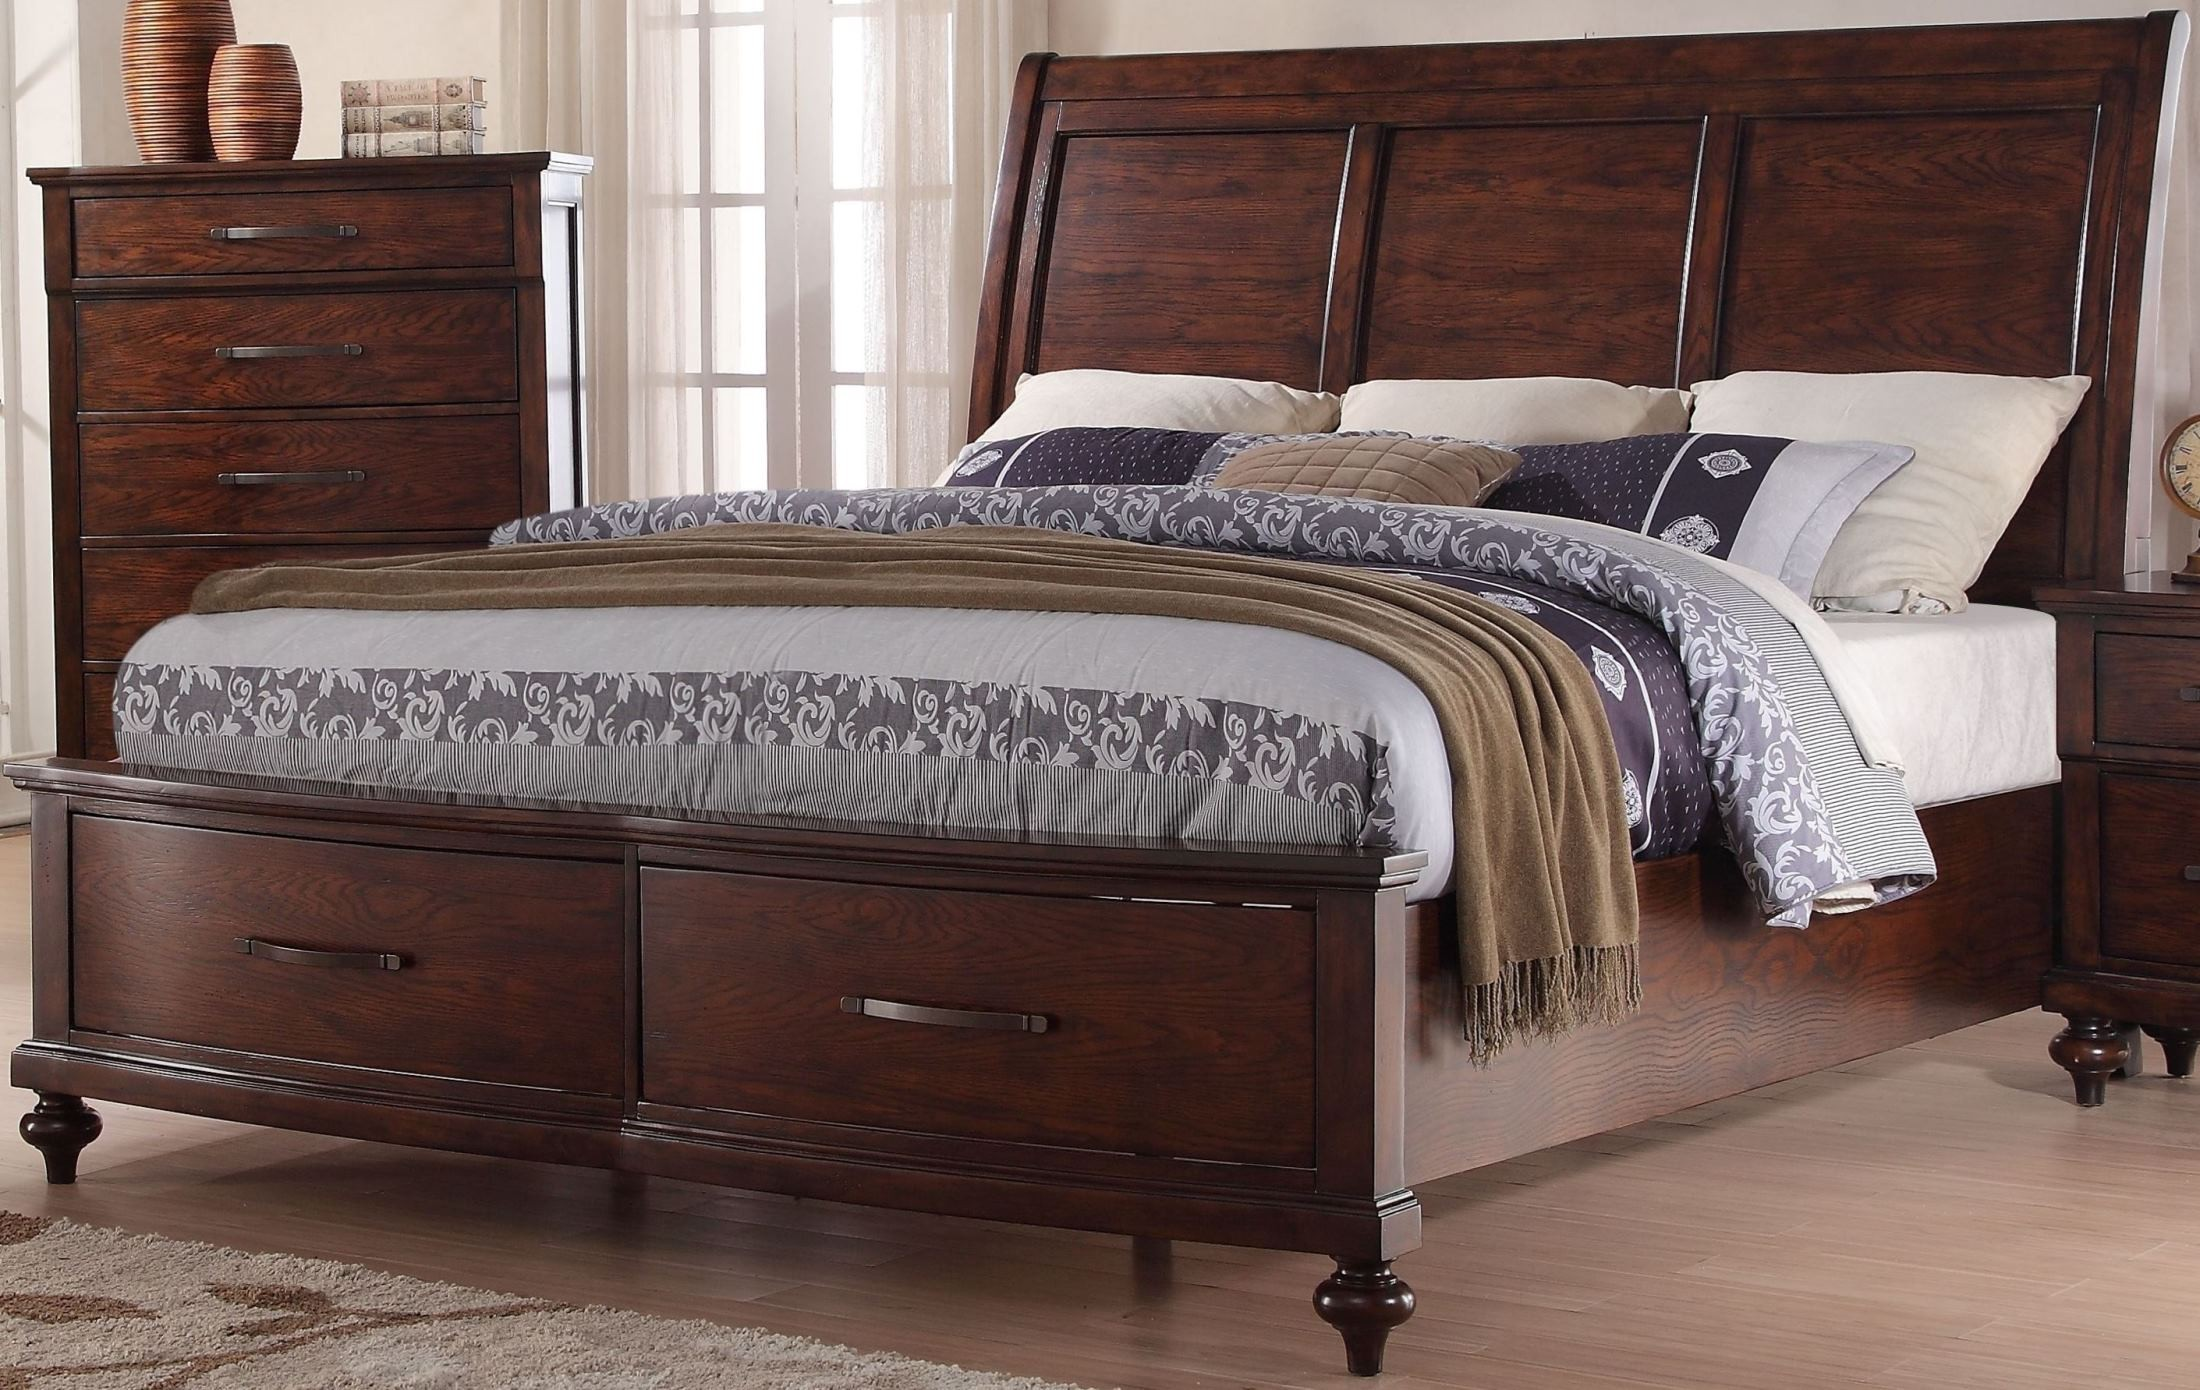 la jolla ranchero brown king sleigh storage bed from new classic coleman furniture. Black Bedroom Furniture Sets. Home Design Ideas